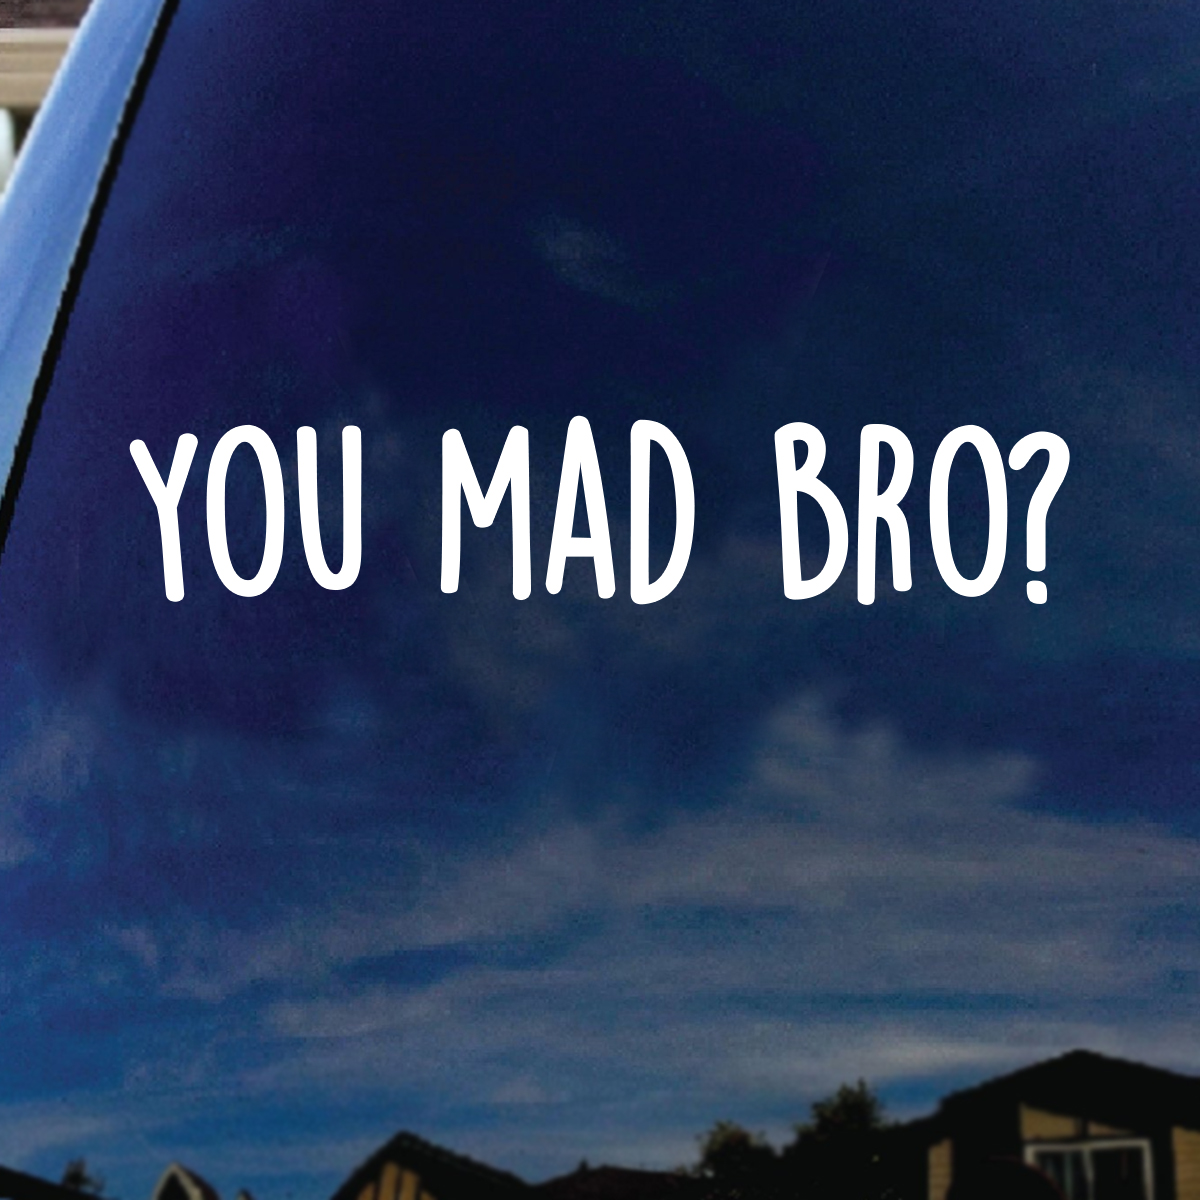 Funny Vinyl Sticker Decal YOU MAD BRO